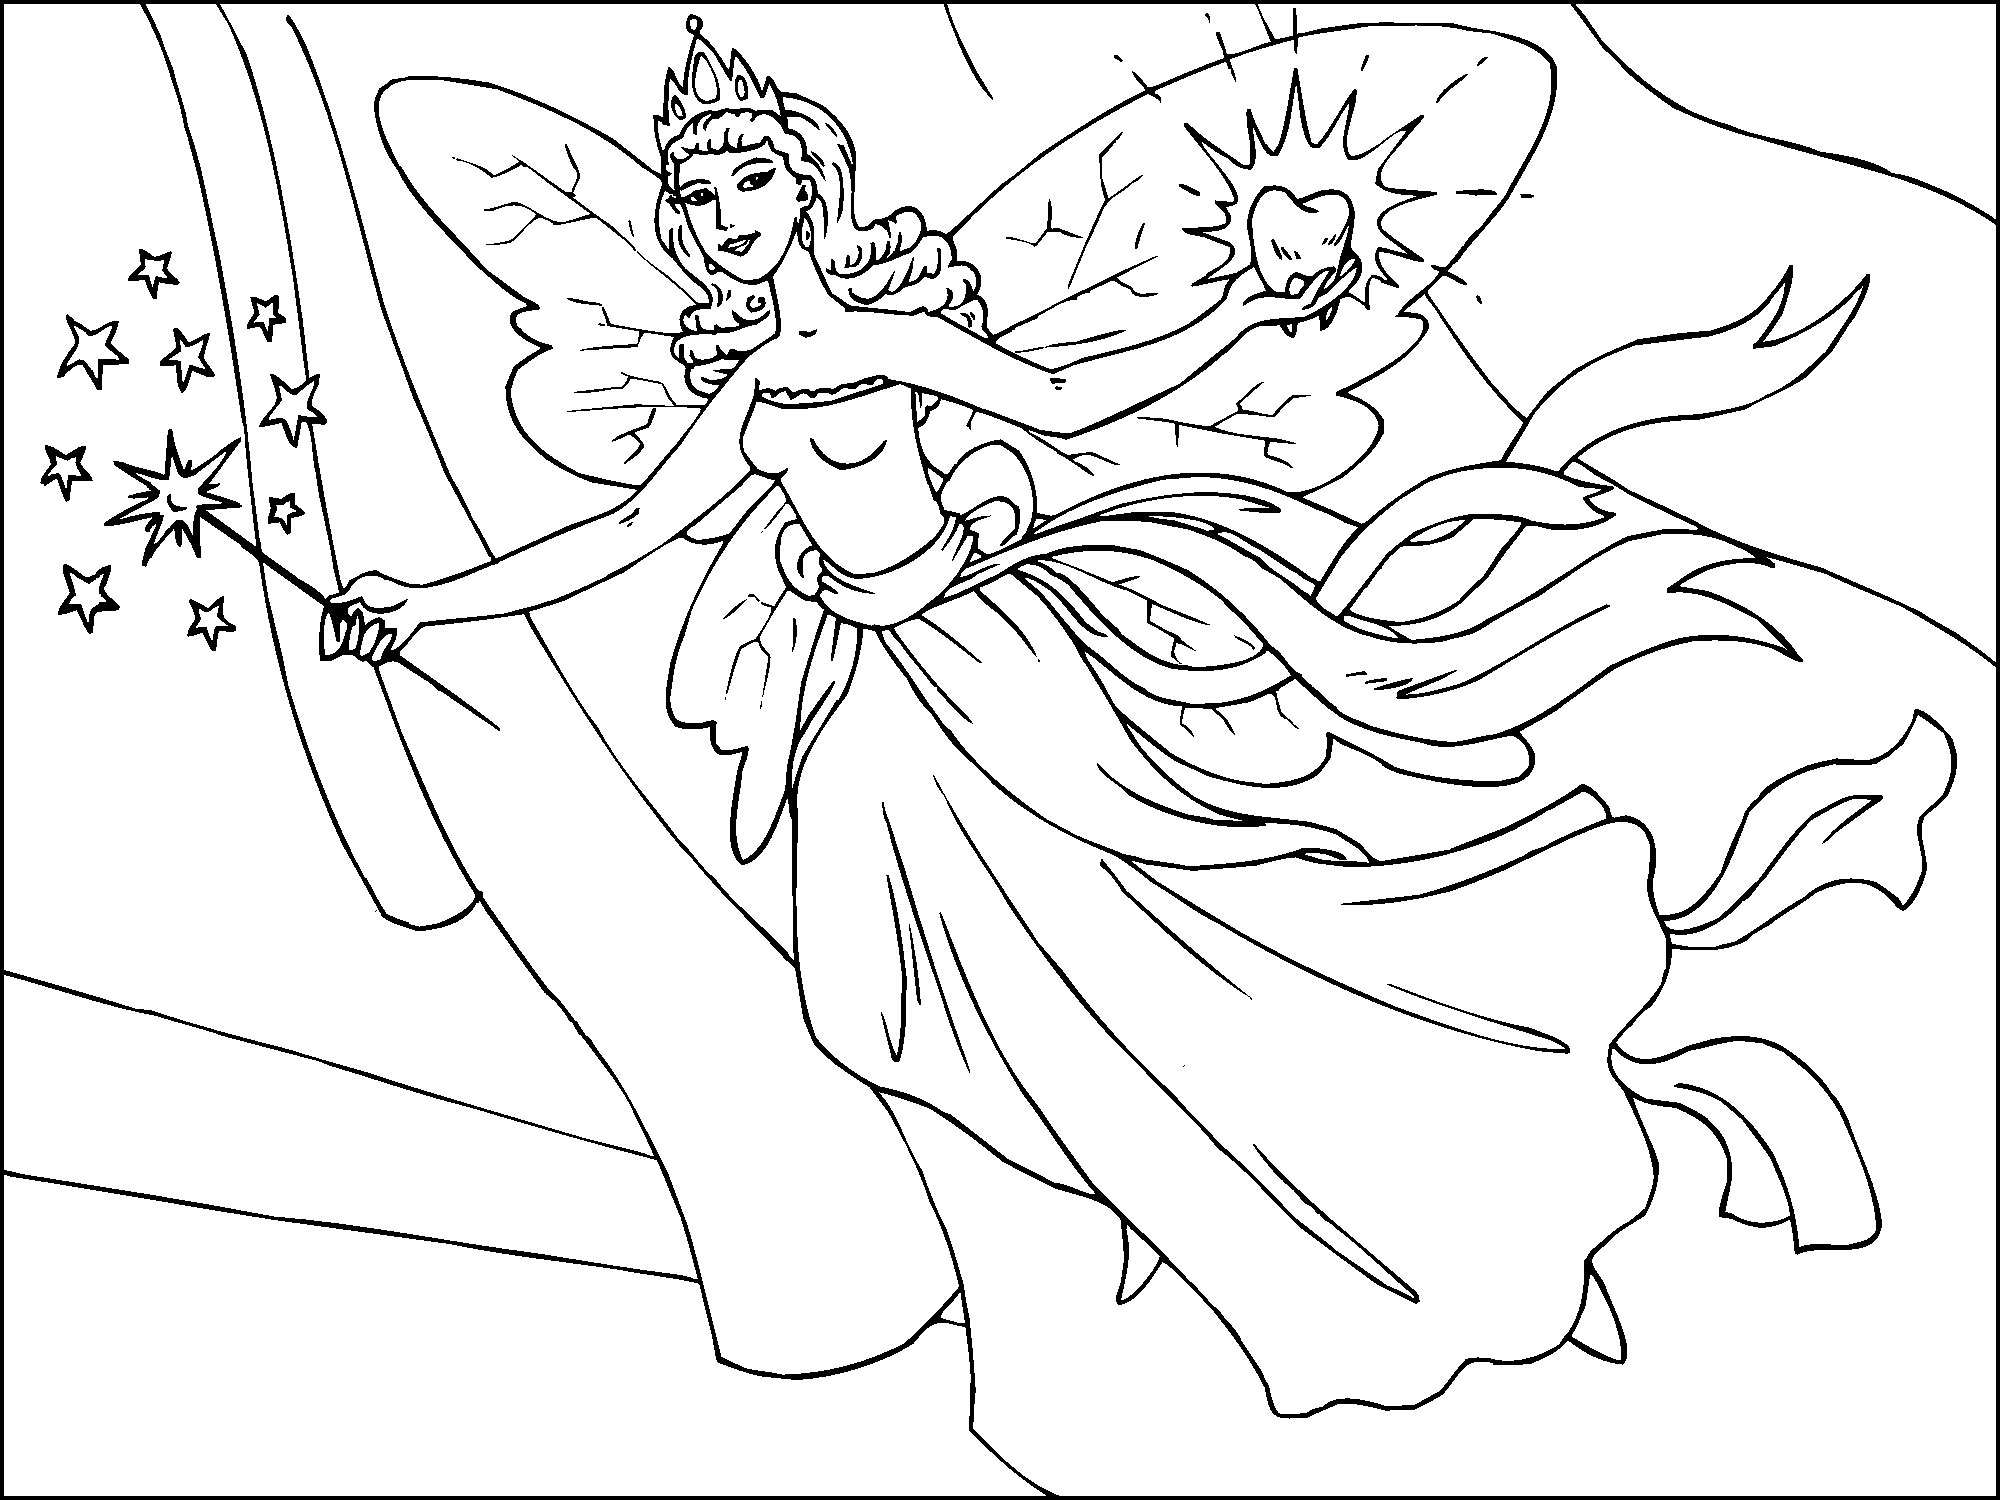 coloring pages of fairies - photo#19